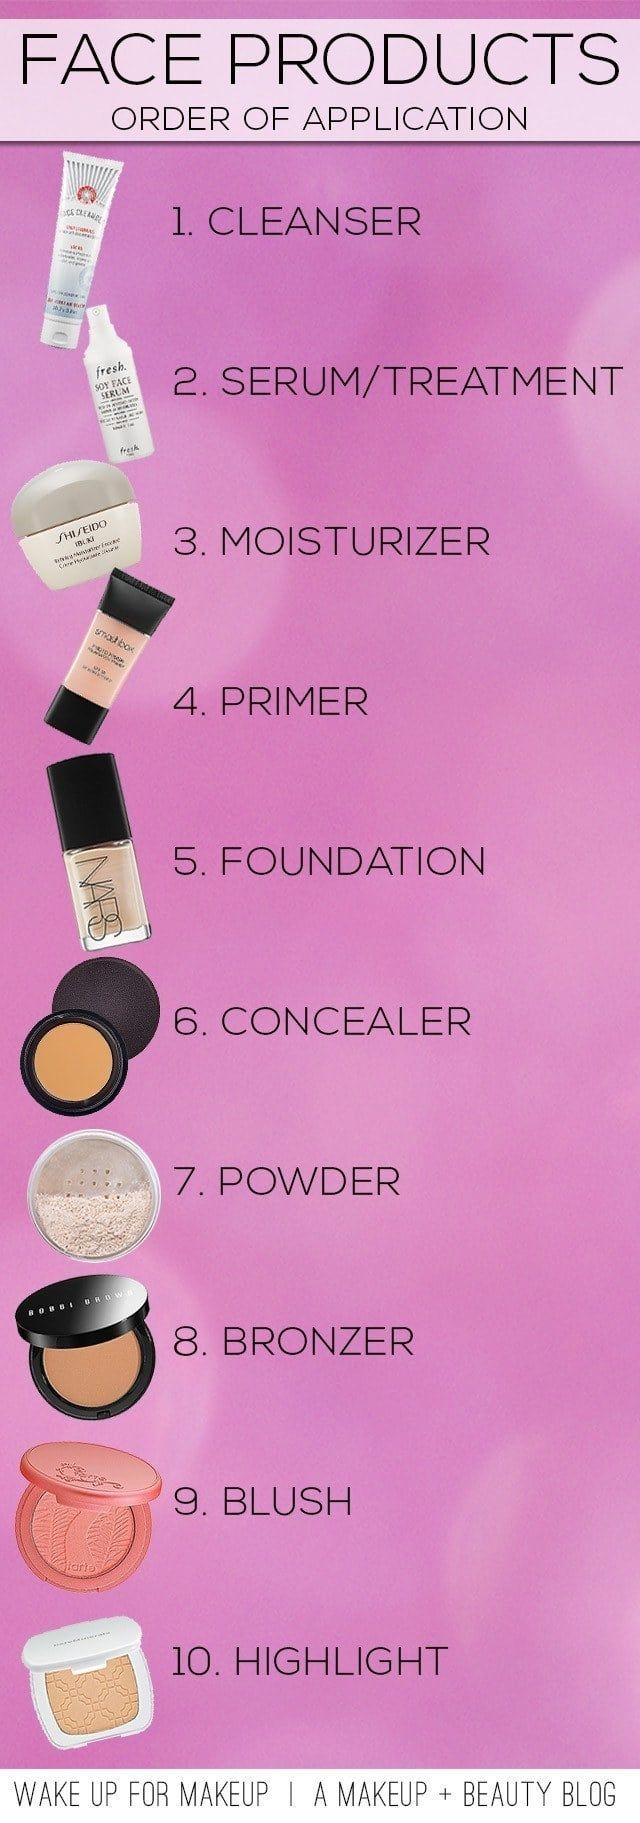 For example, apply concealer *after* foundation so you don't waste it on places foundation has already covered!Get all the details and the reasons behind this order here.